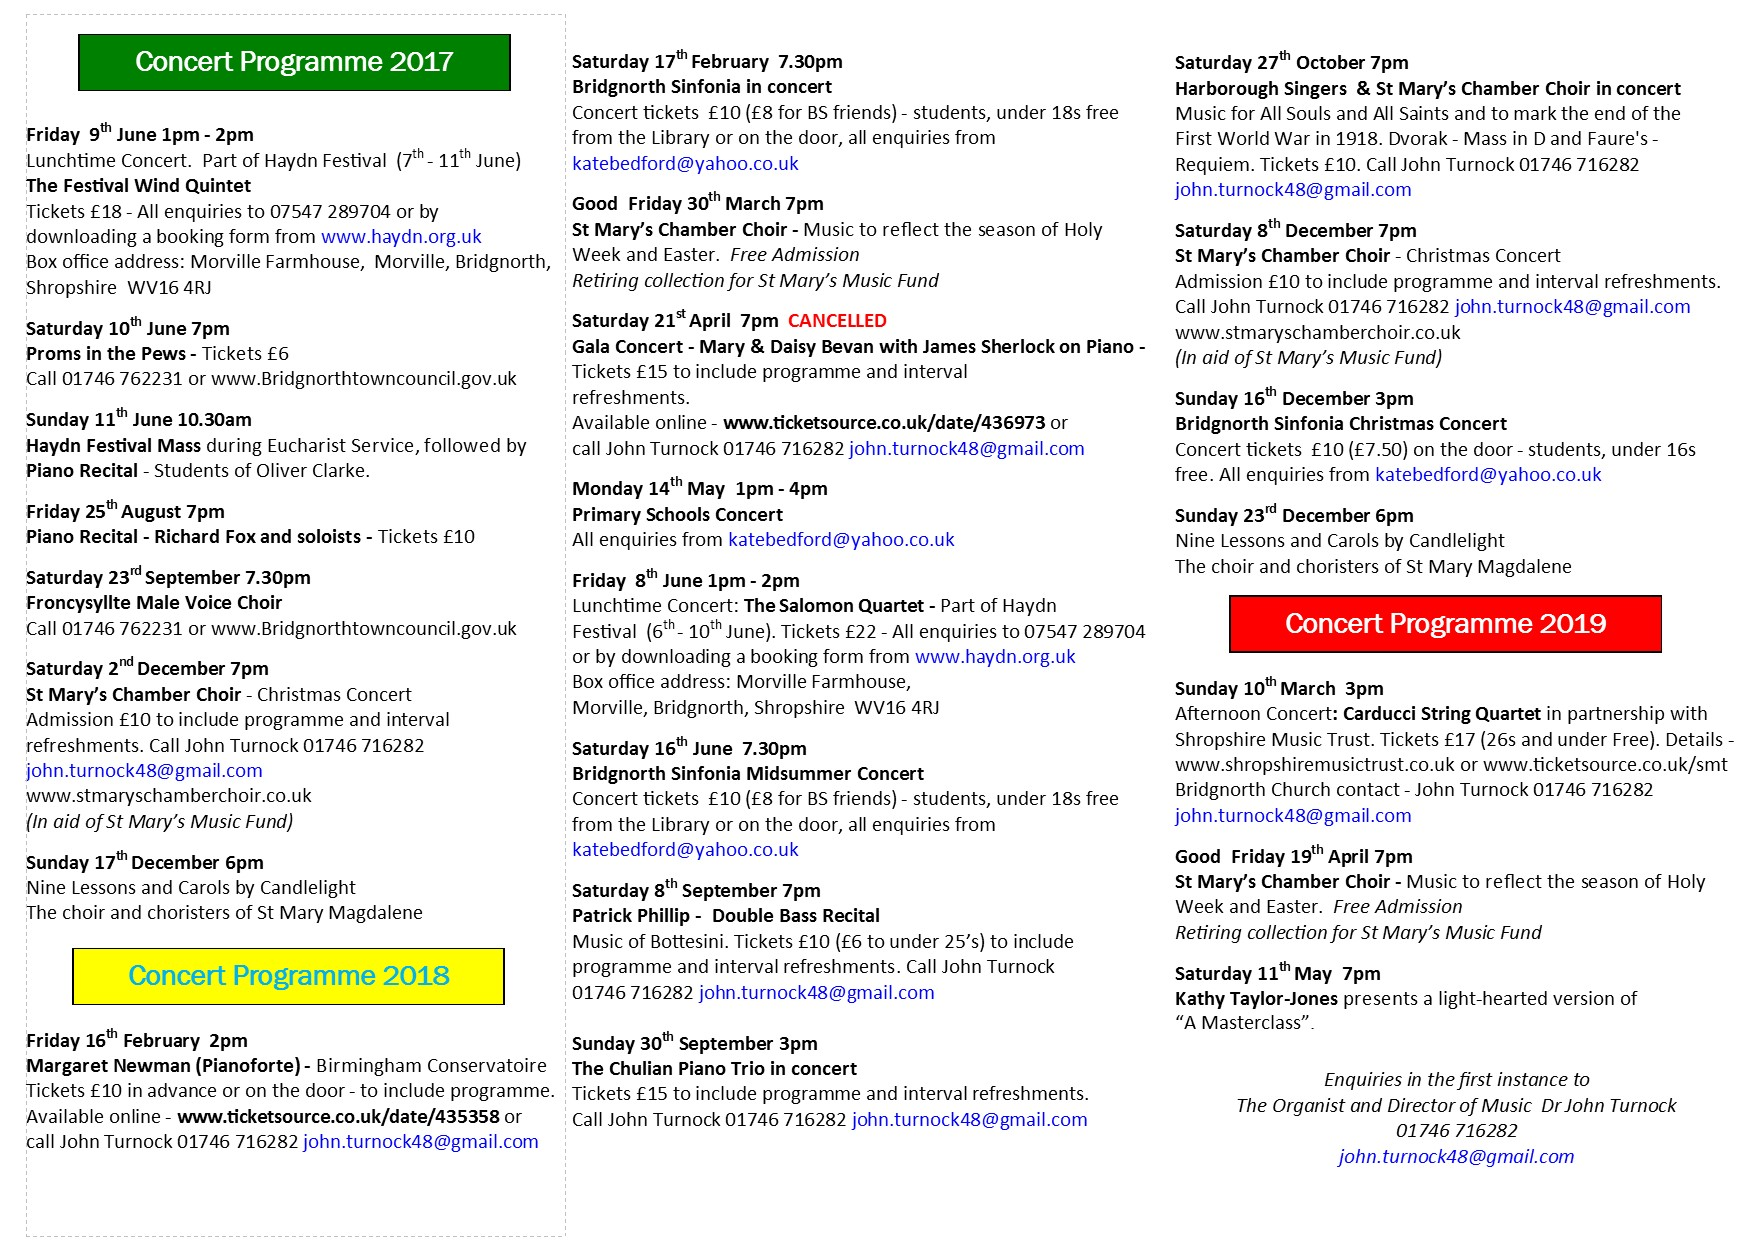 ST MARY MAGDALENE CONCERT PROGRAMME   2017-2019 working copy 14.11.18